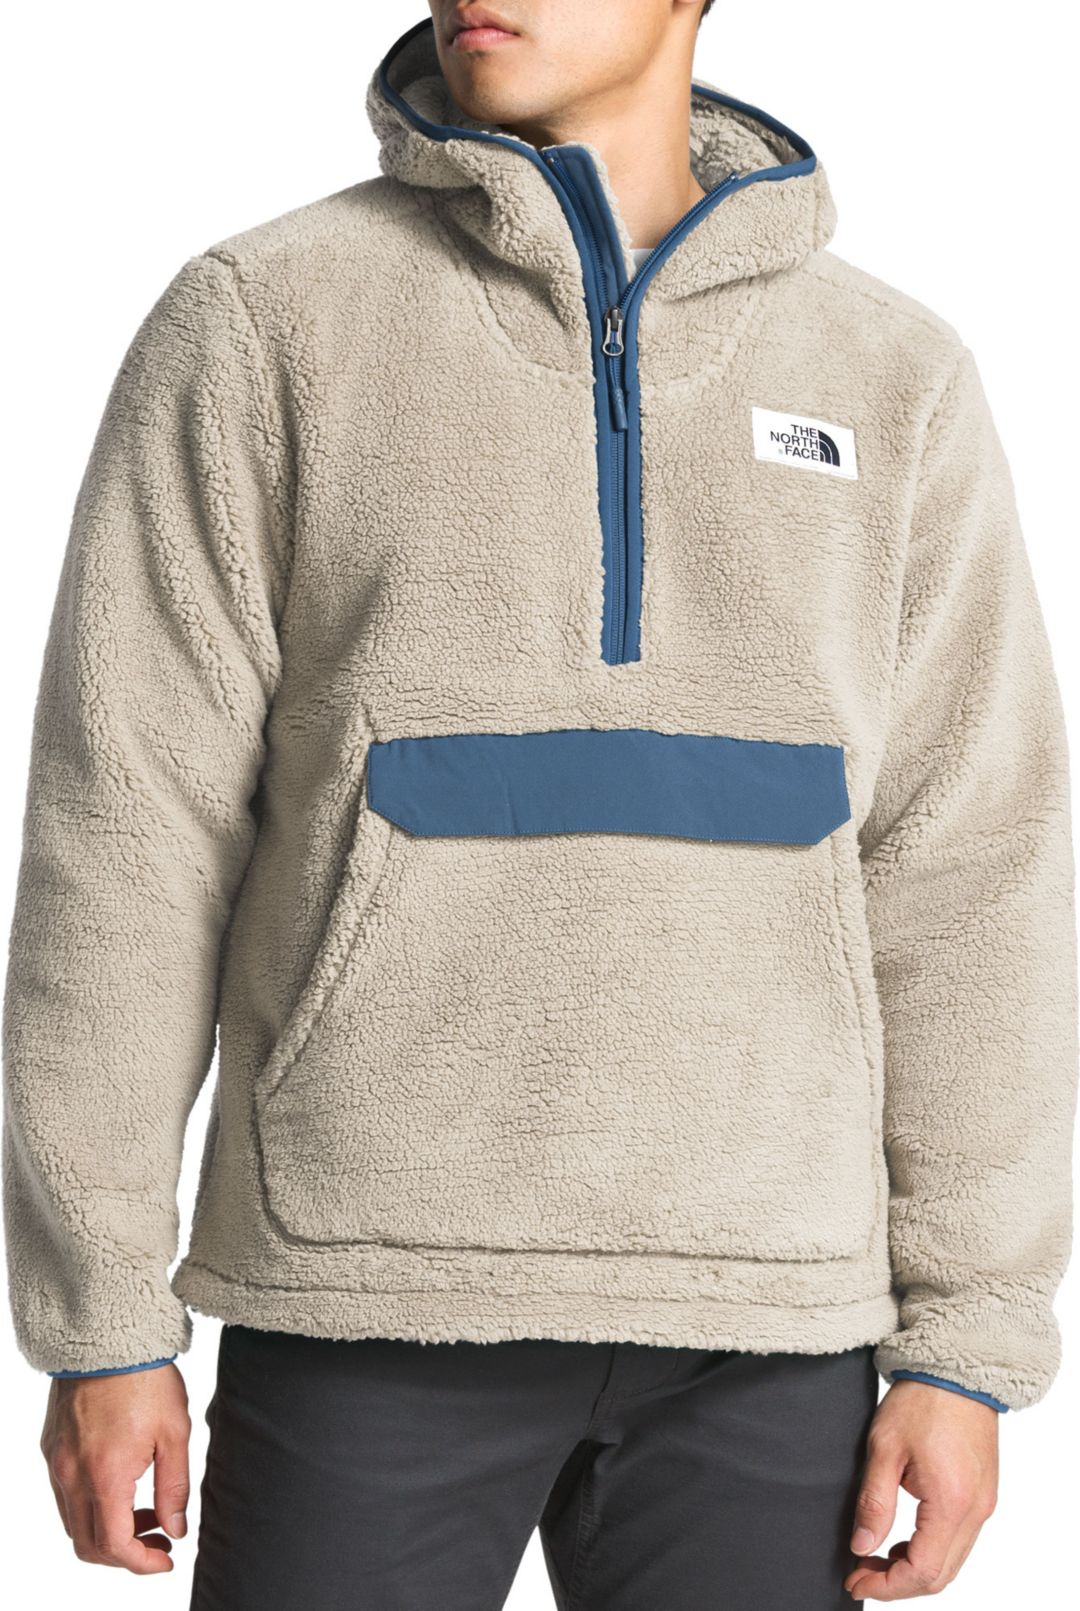 844ba010c The North Face Men's Campshire Hoodie